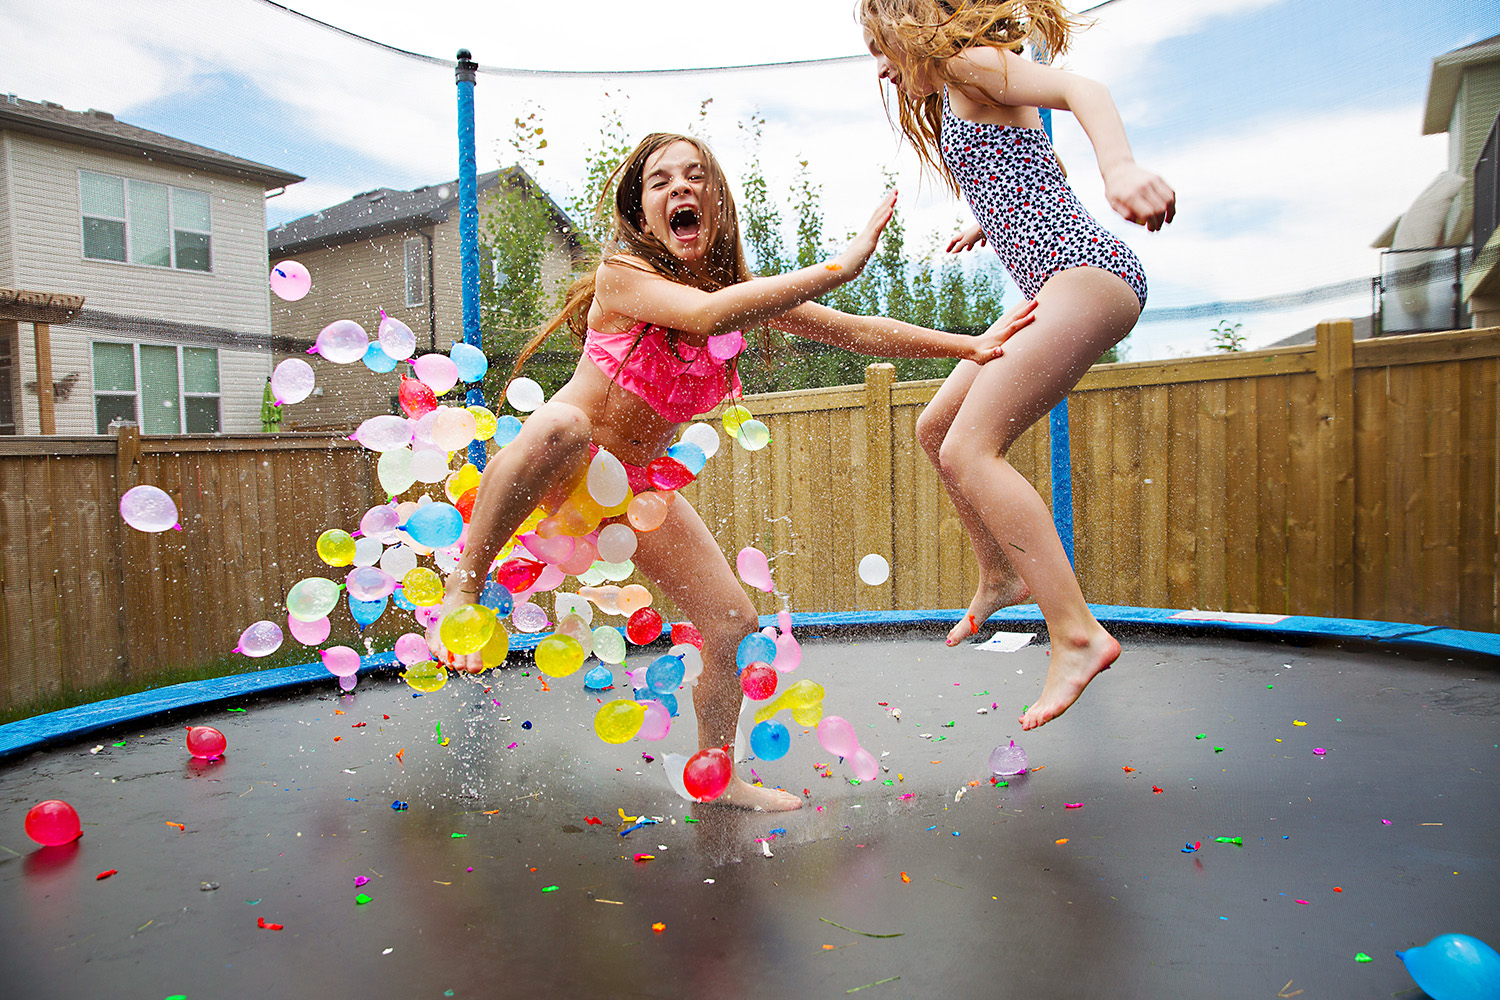 Jumping on the trampoline with water balloons and a sprinkler